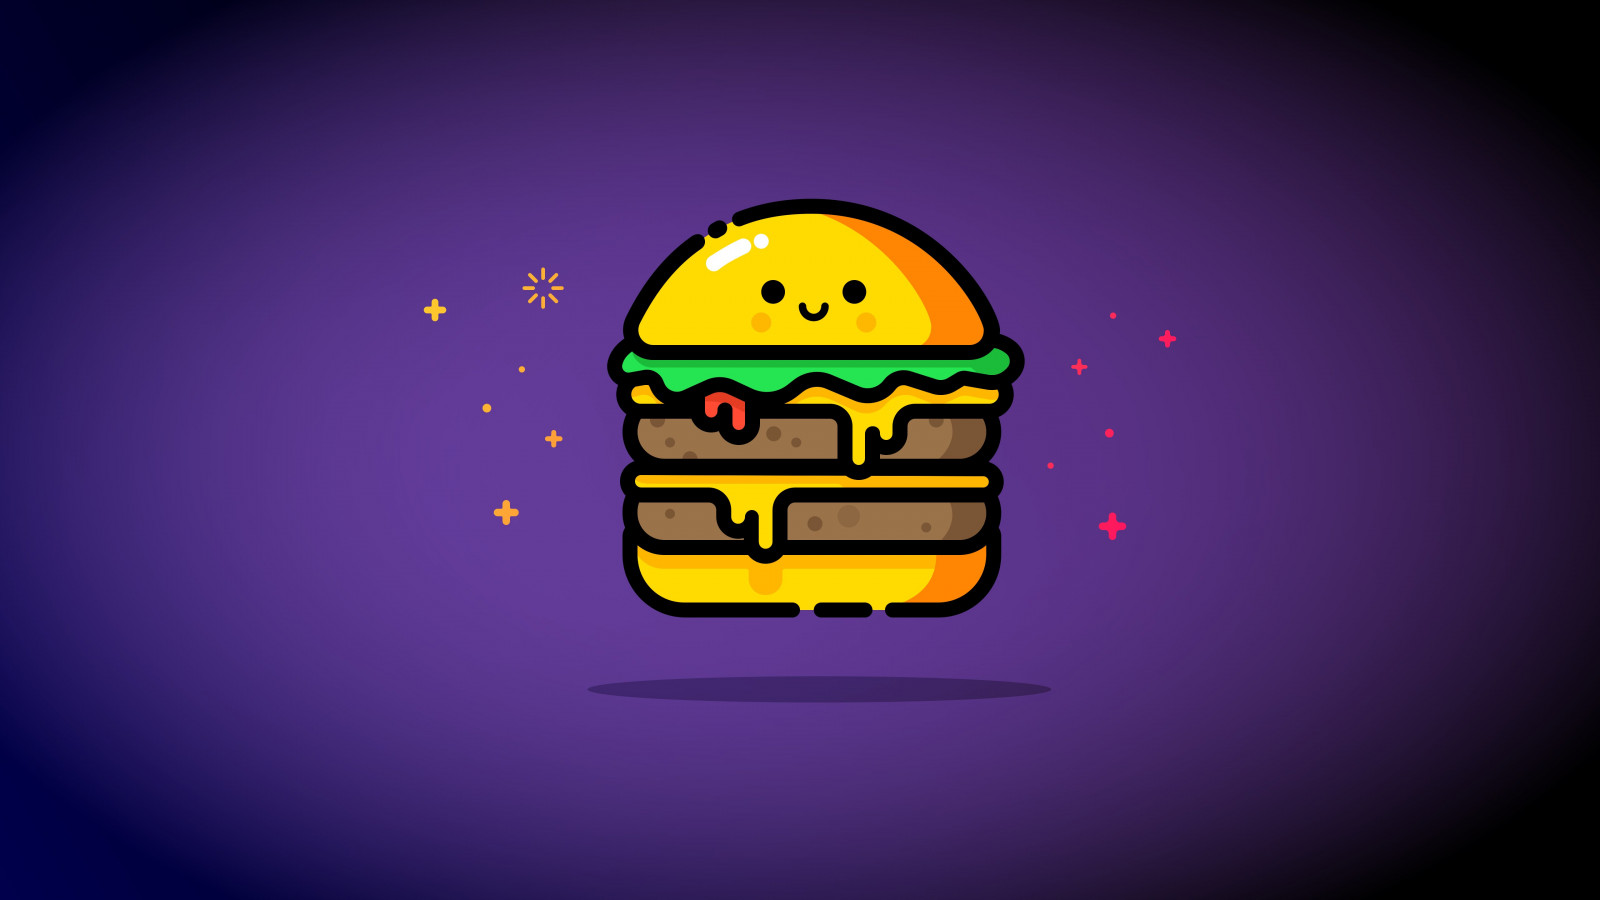 Double cheese wallpaper 1600x900